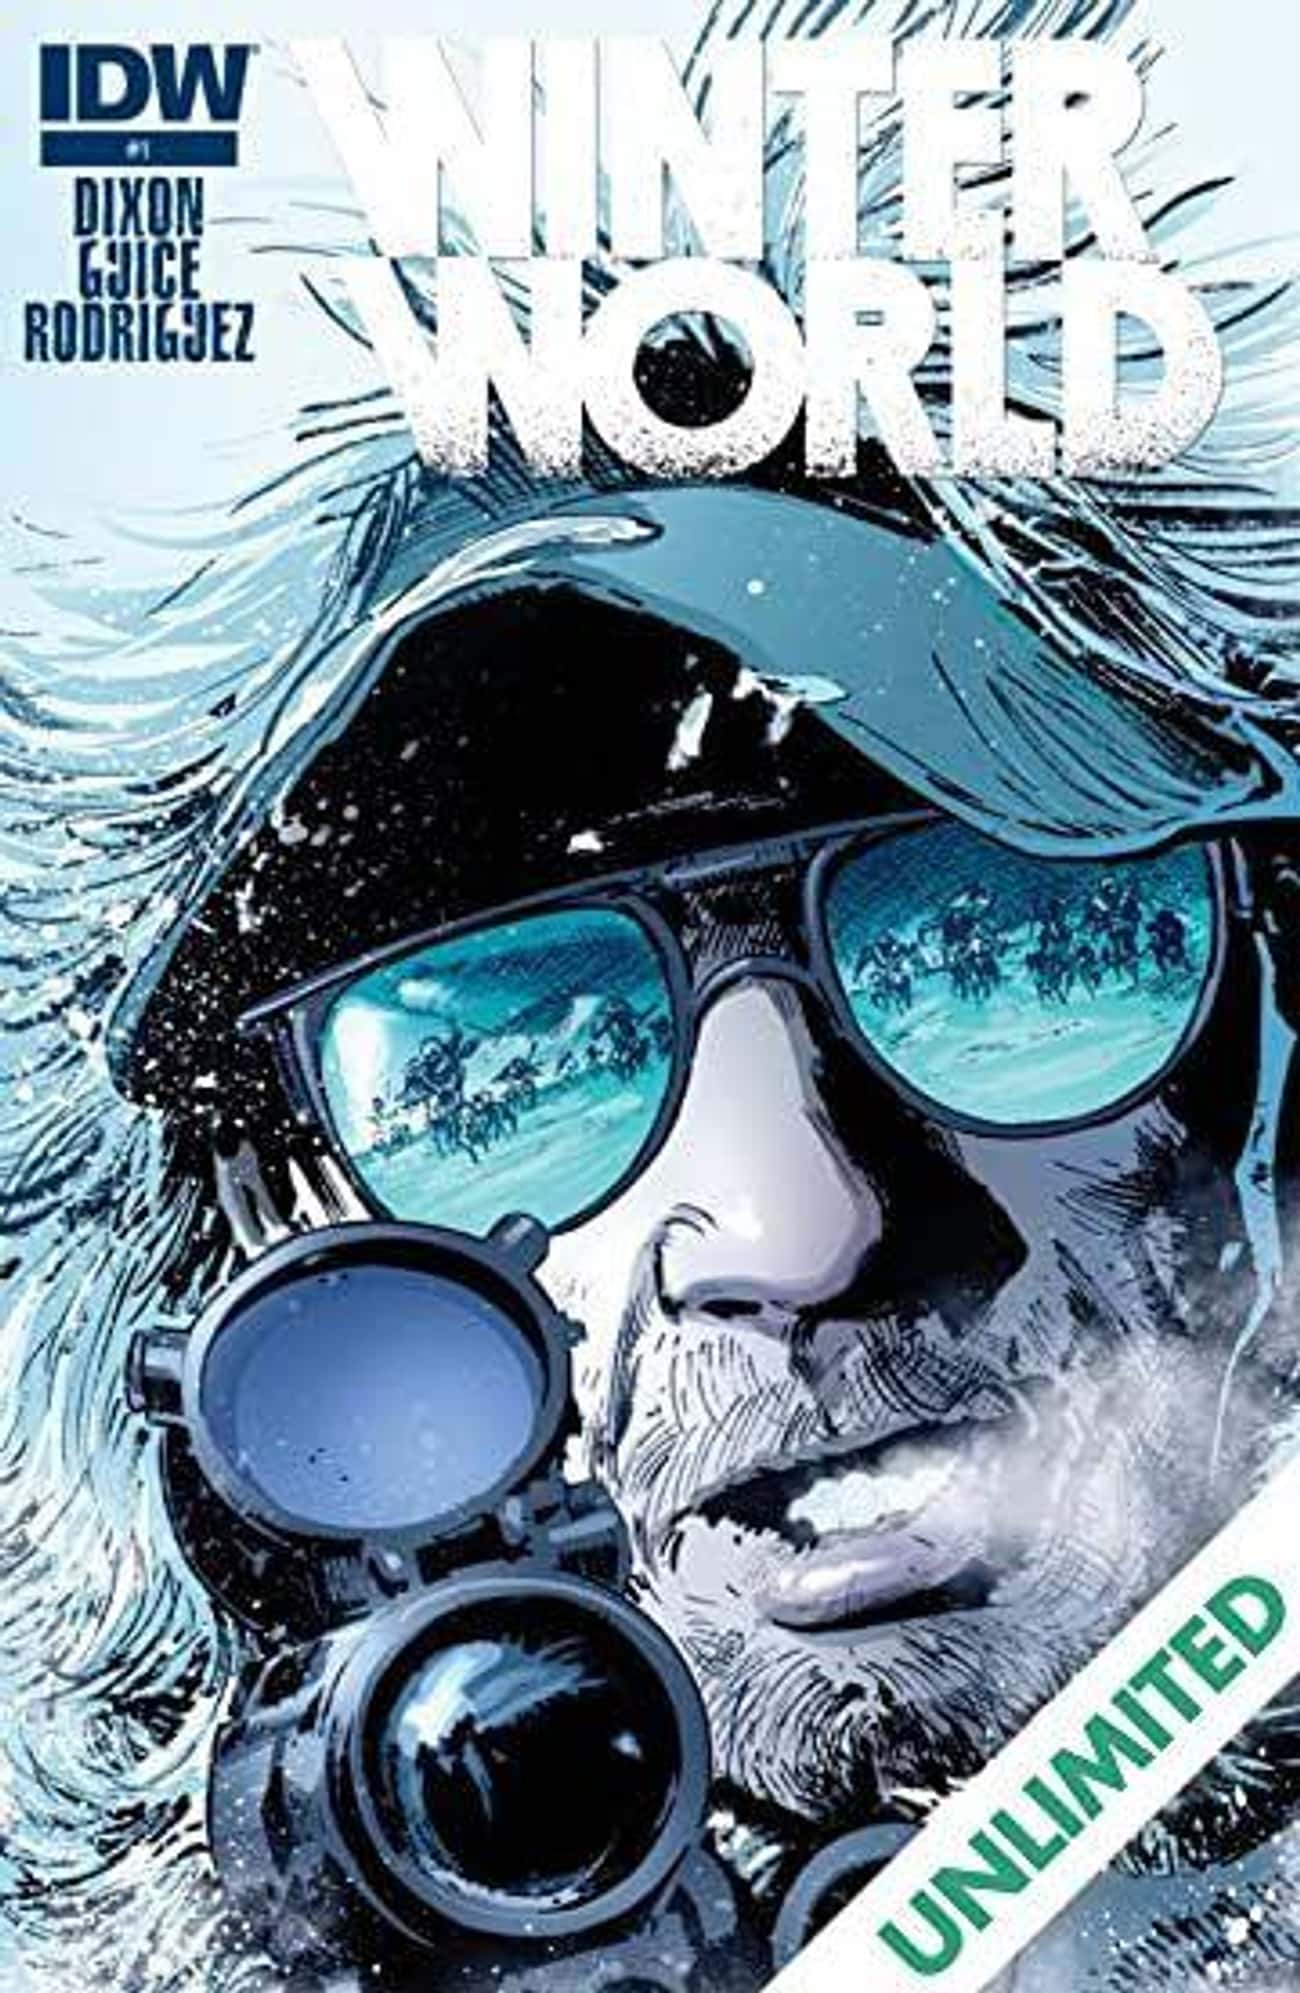 Winterworld is listed (or ranked) 3 on the list The Best Post-Apocalyptic Comics On ComiXology To Binge Read